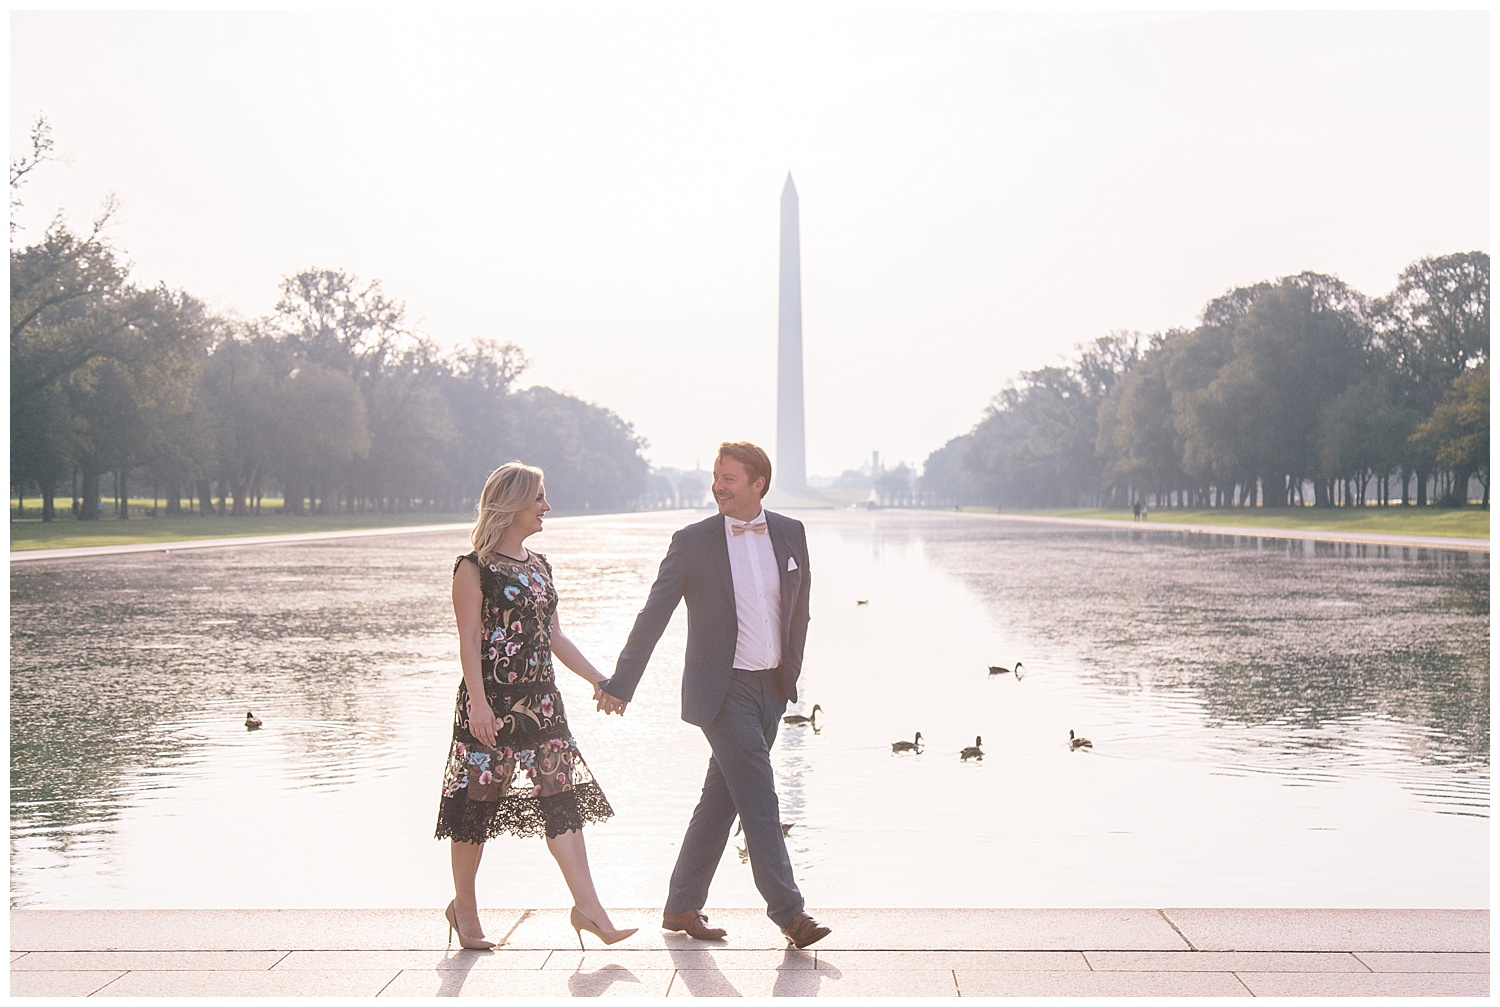 emily-belson-photography-washington-dc-engagement-emily-john-06.jpg